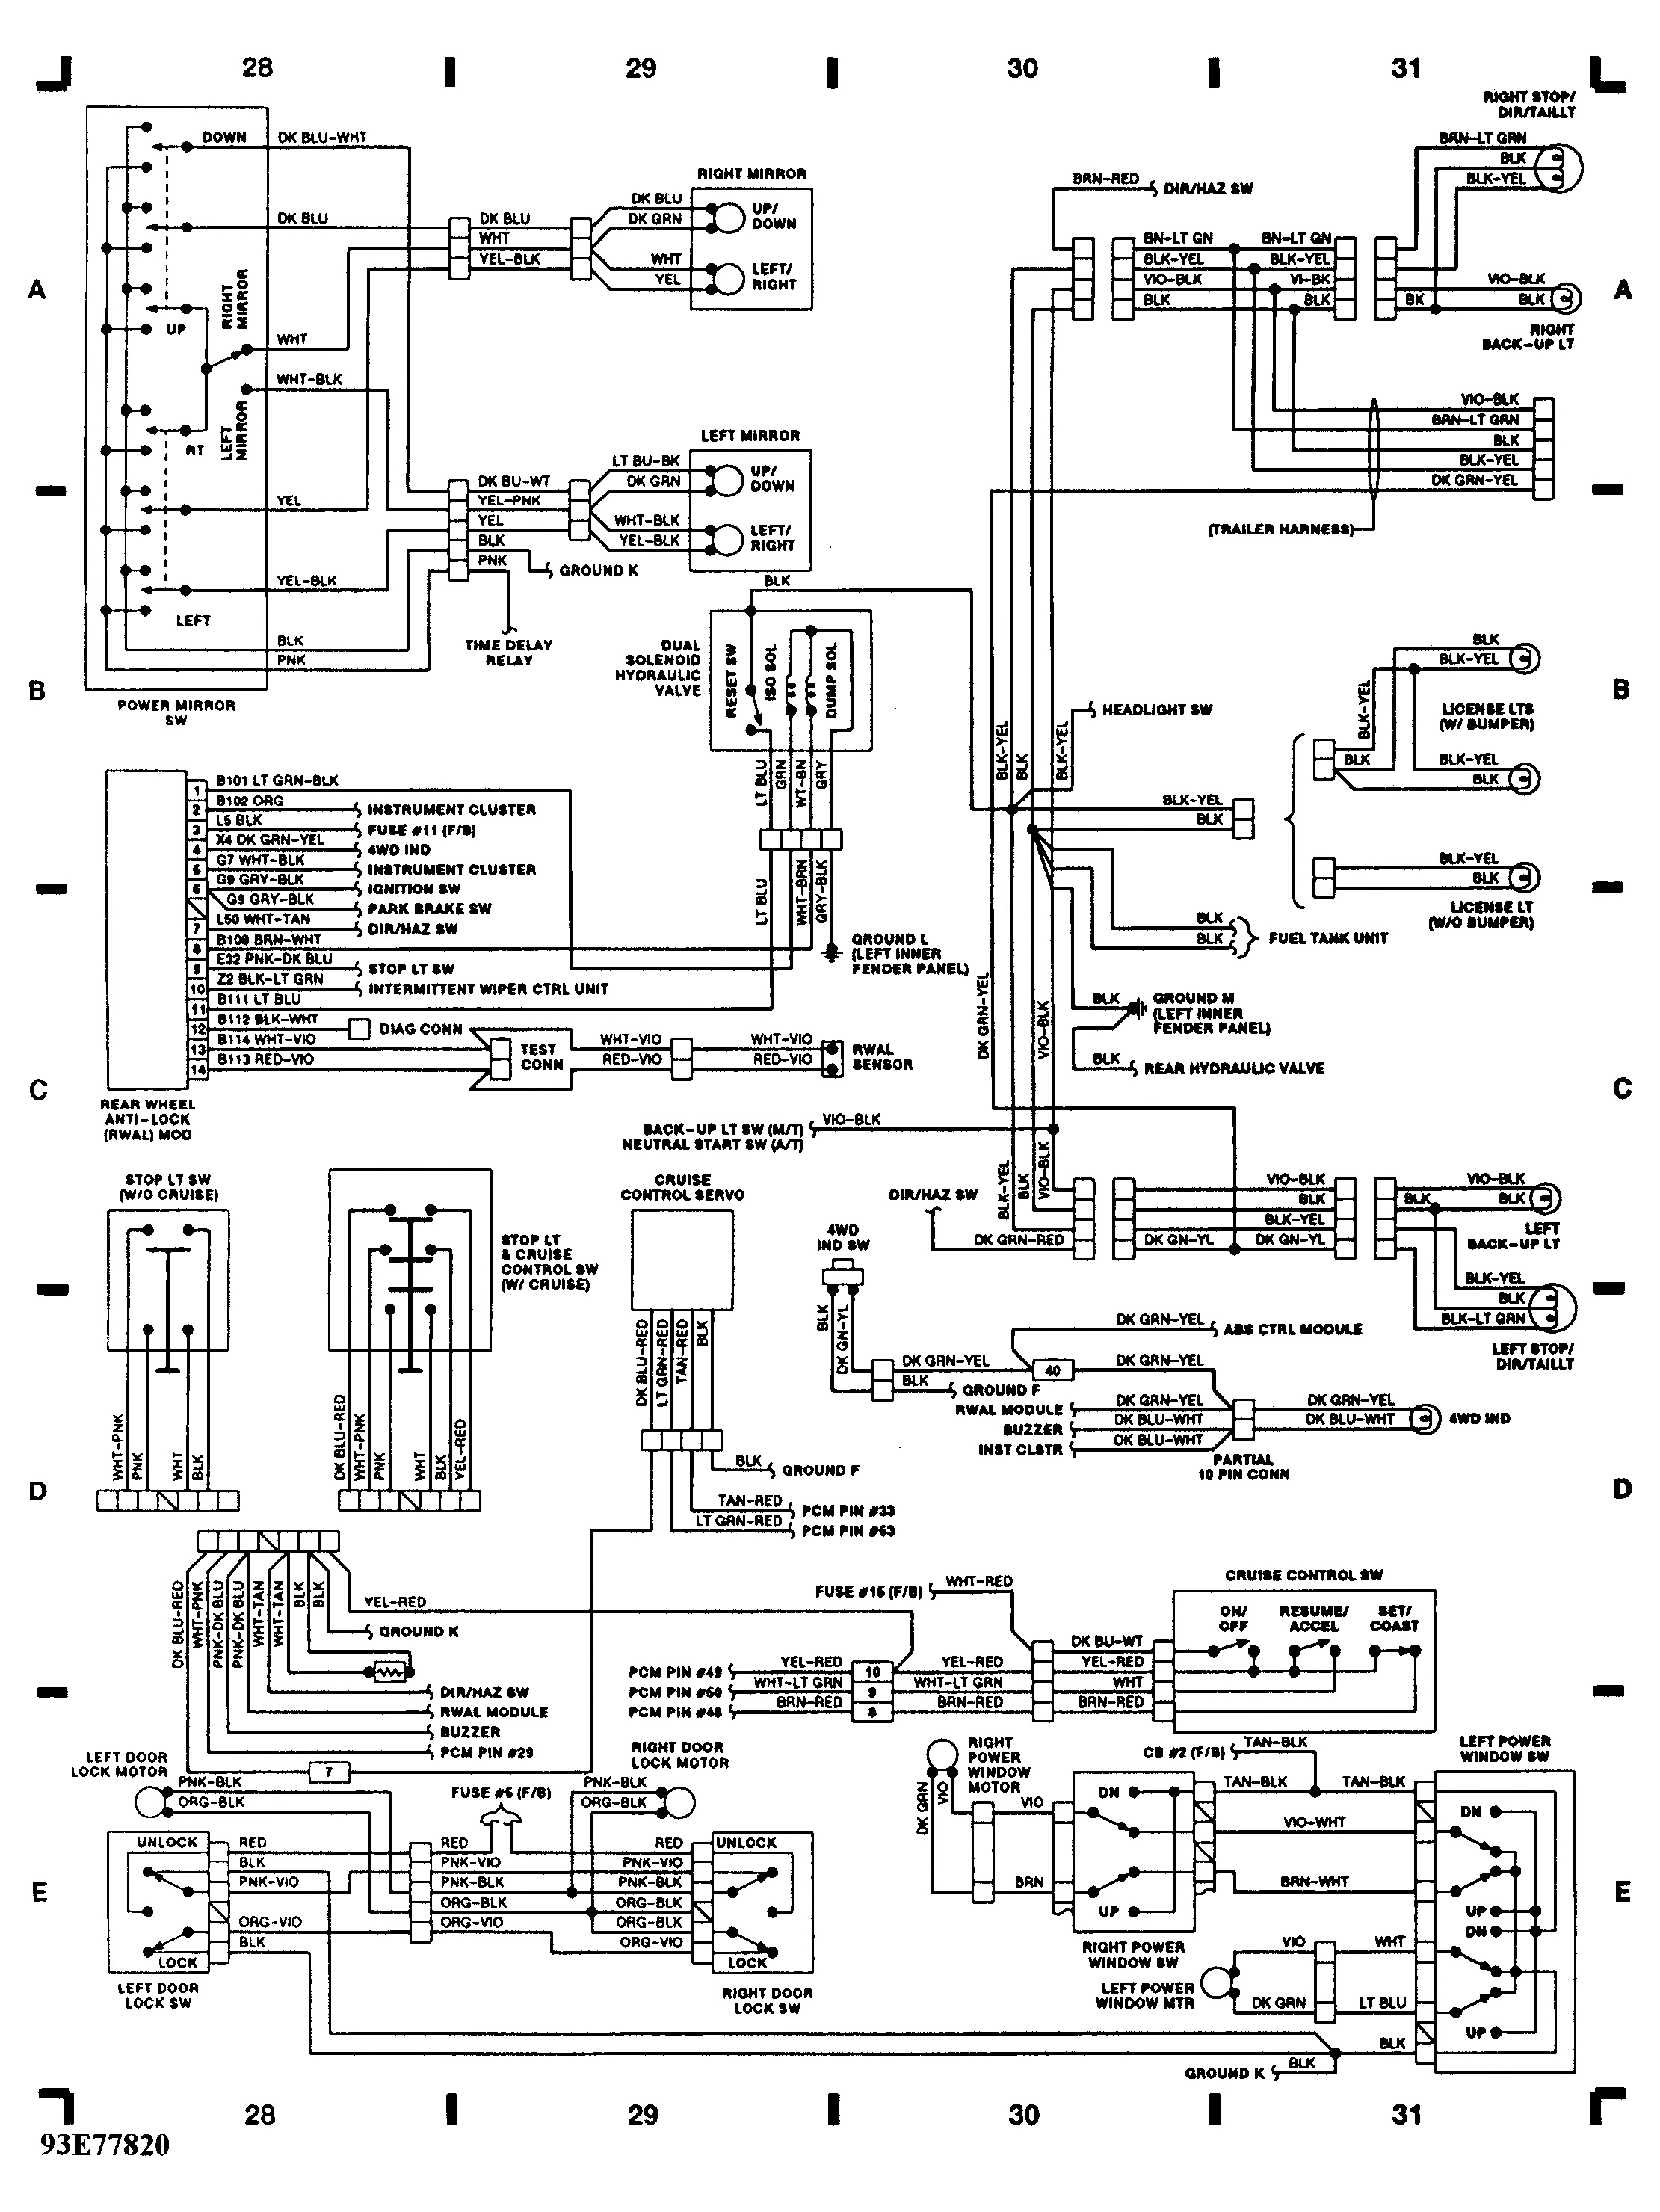 Durango Slt Break Light Wiring Diagram 38 Images Acura Tail Original And Parking Lights Not Working 1st Head Switch Went 2002 Dodge